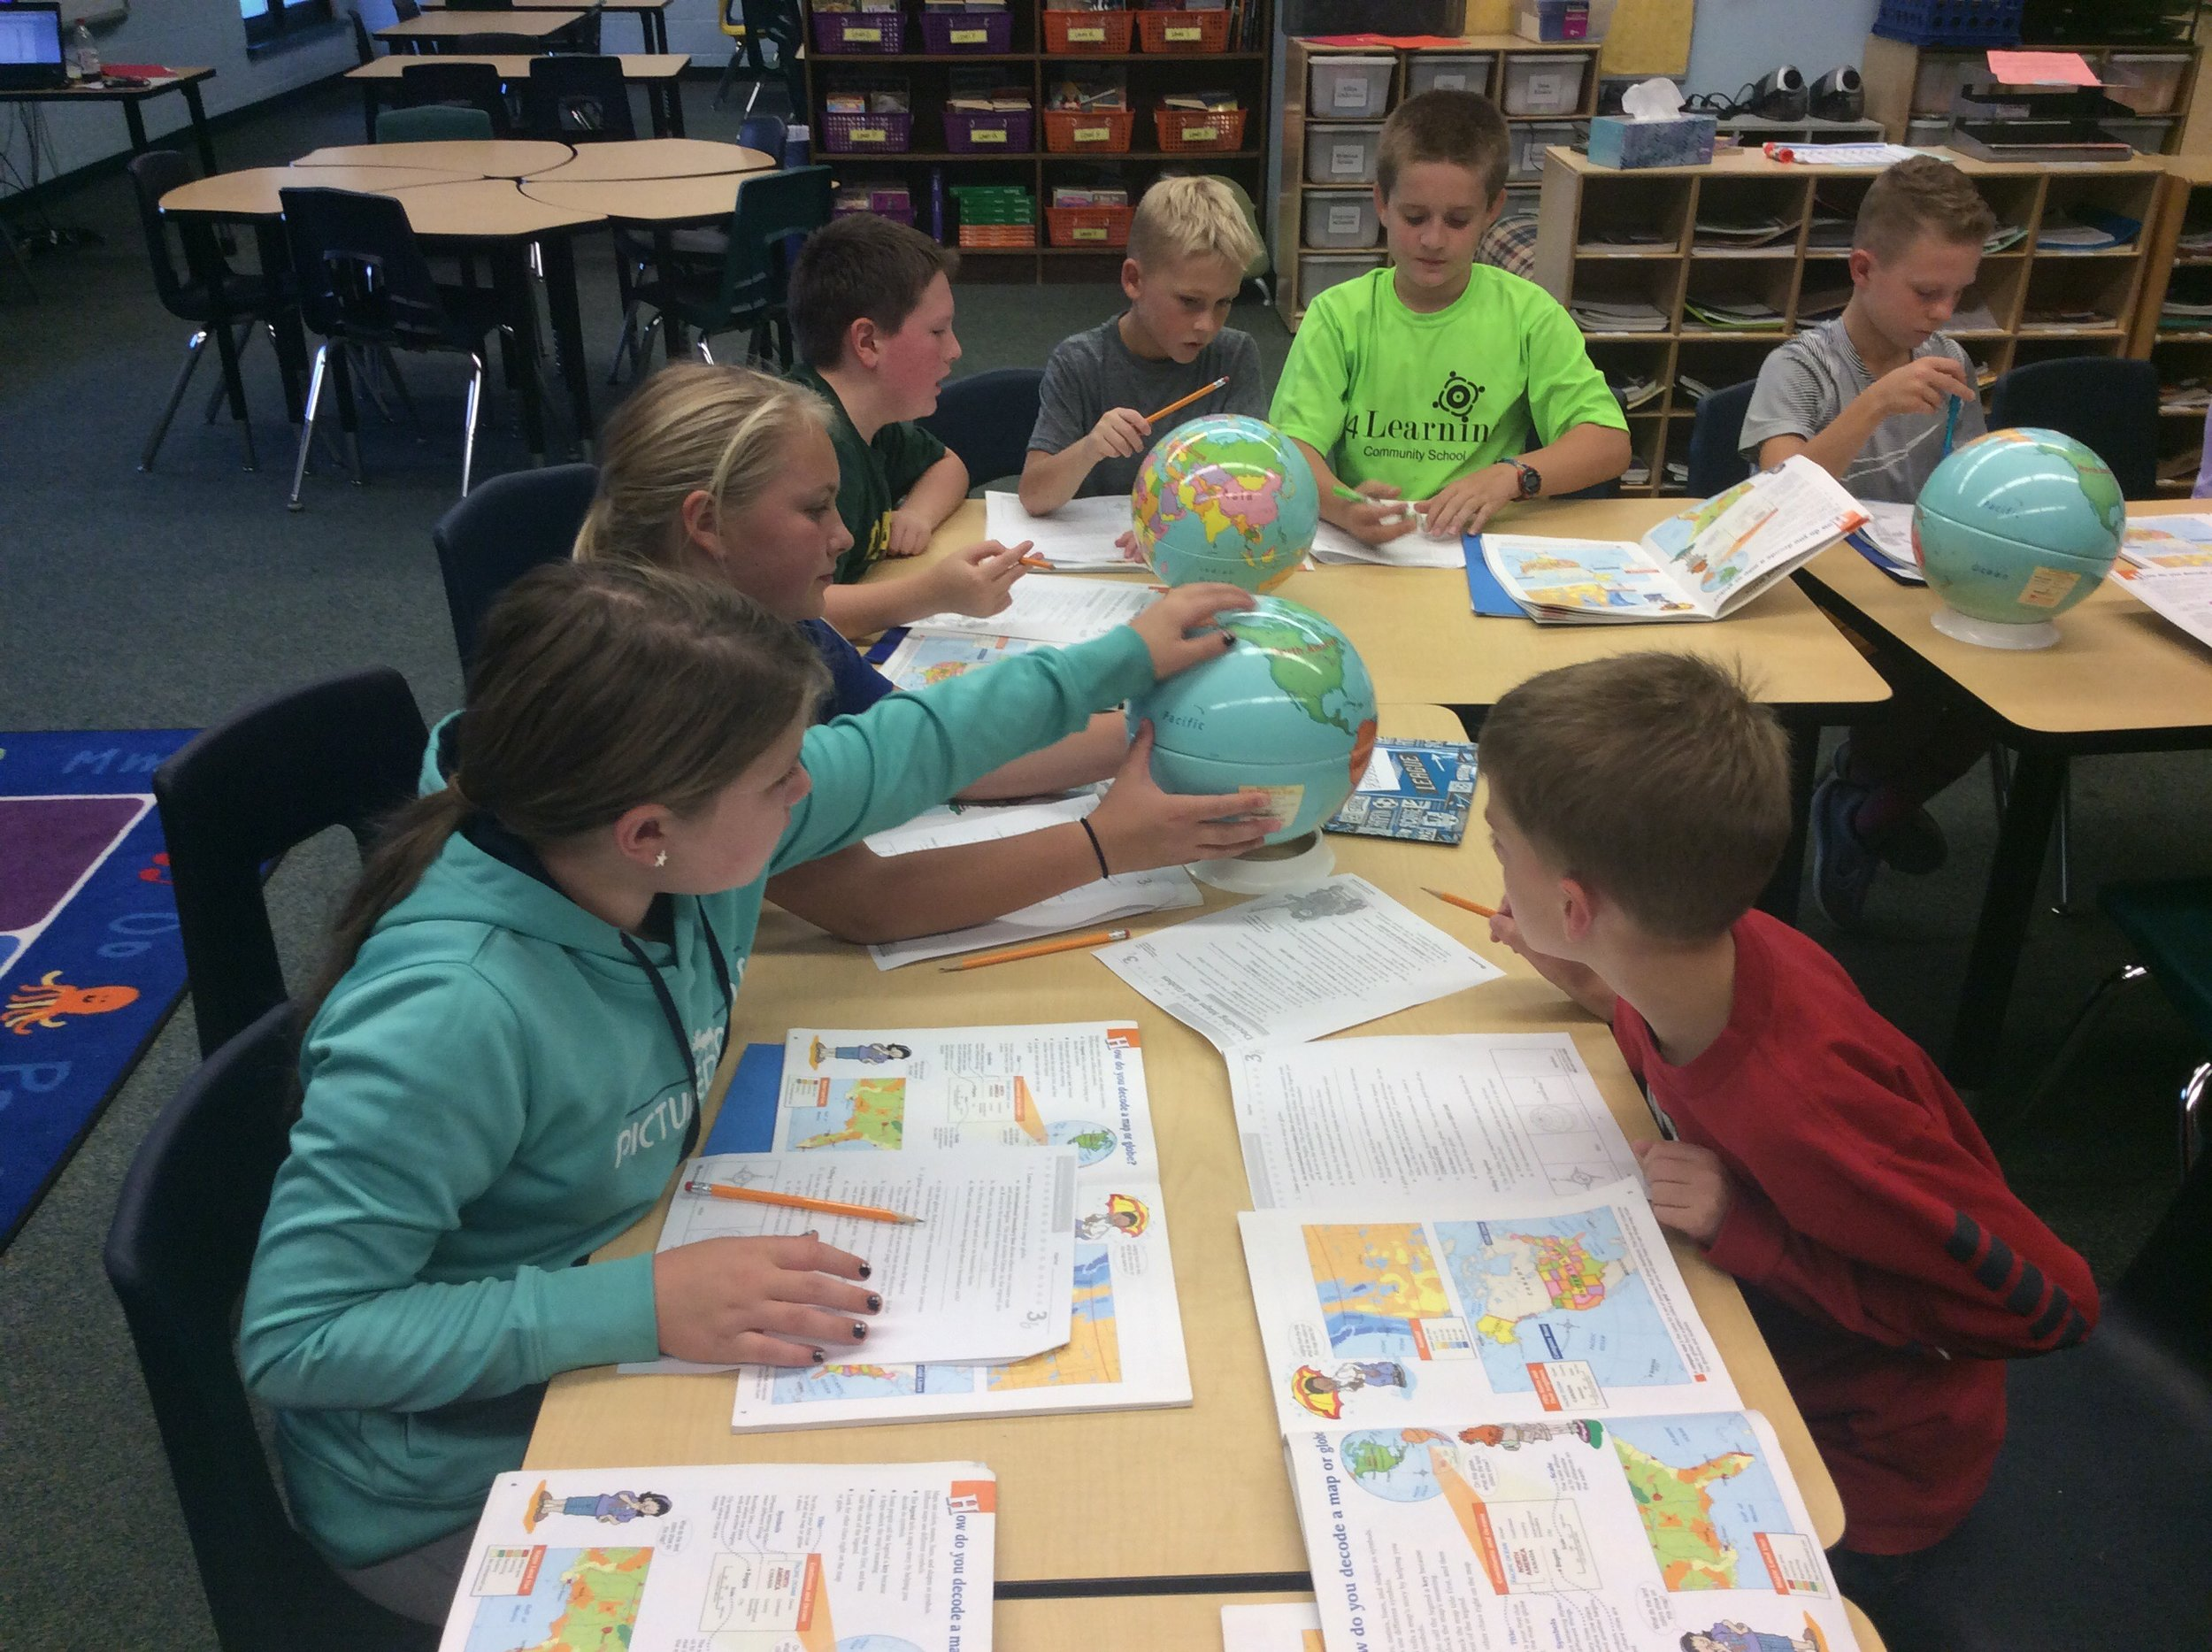 Students work as a small group to identify features found on globes and maps.